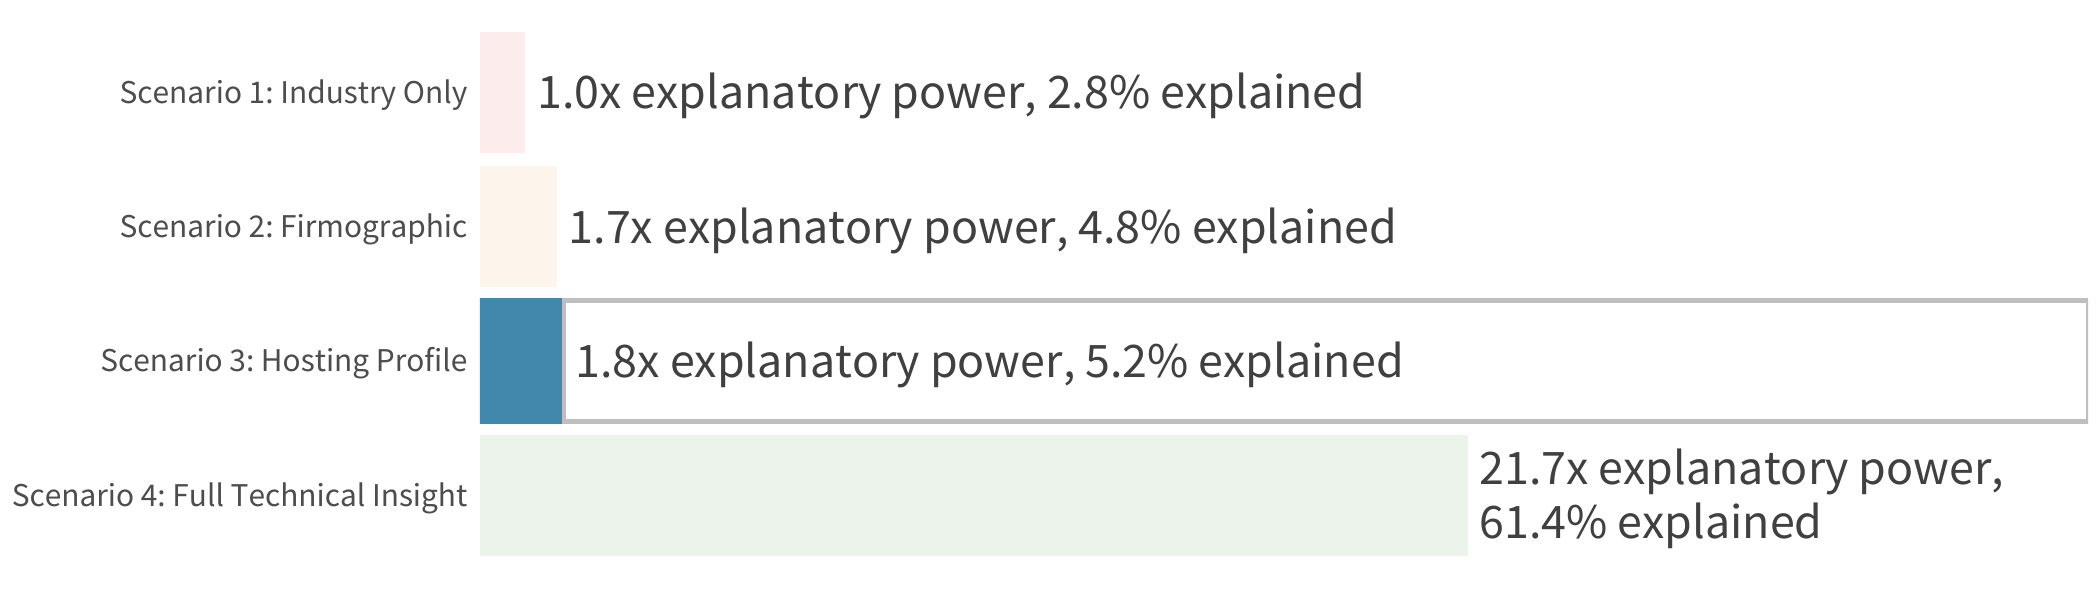 Explanatory Power of Partial Technical Data